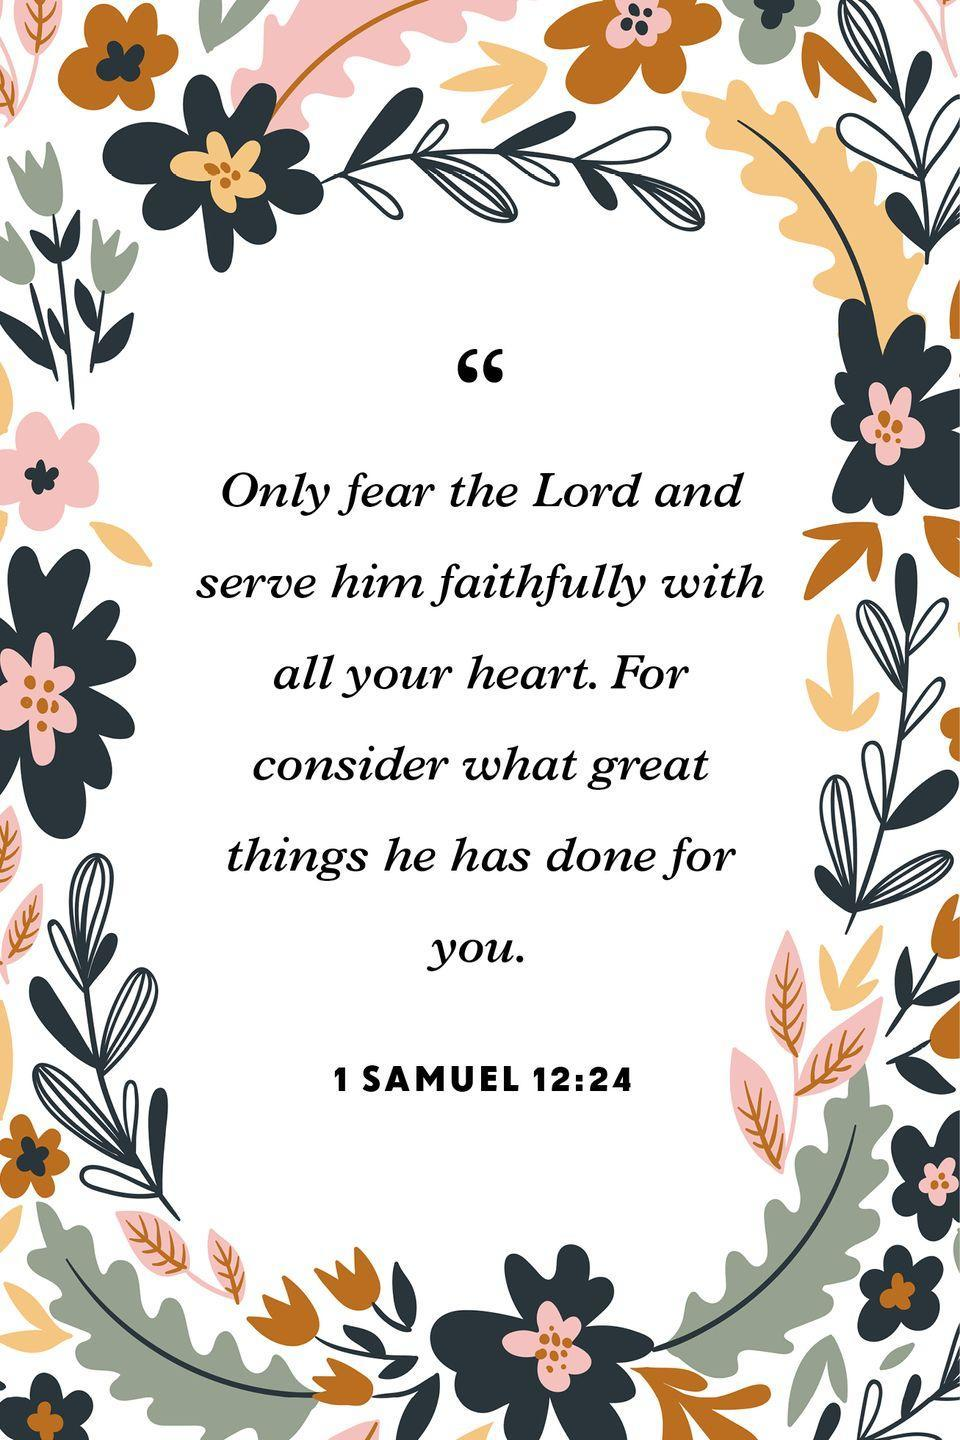 """<p>""""Only fear the Lord and serve him faithfully with all your heart. For consider what great things he has done for you.""""</p>"""